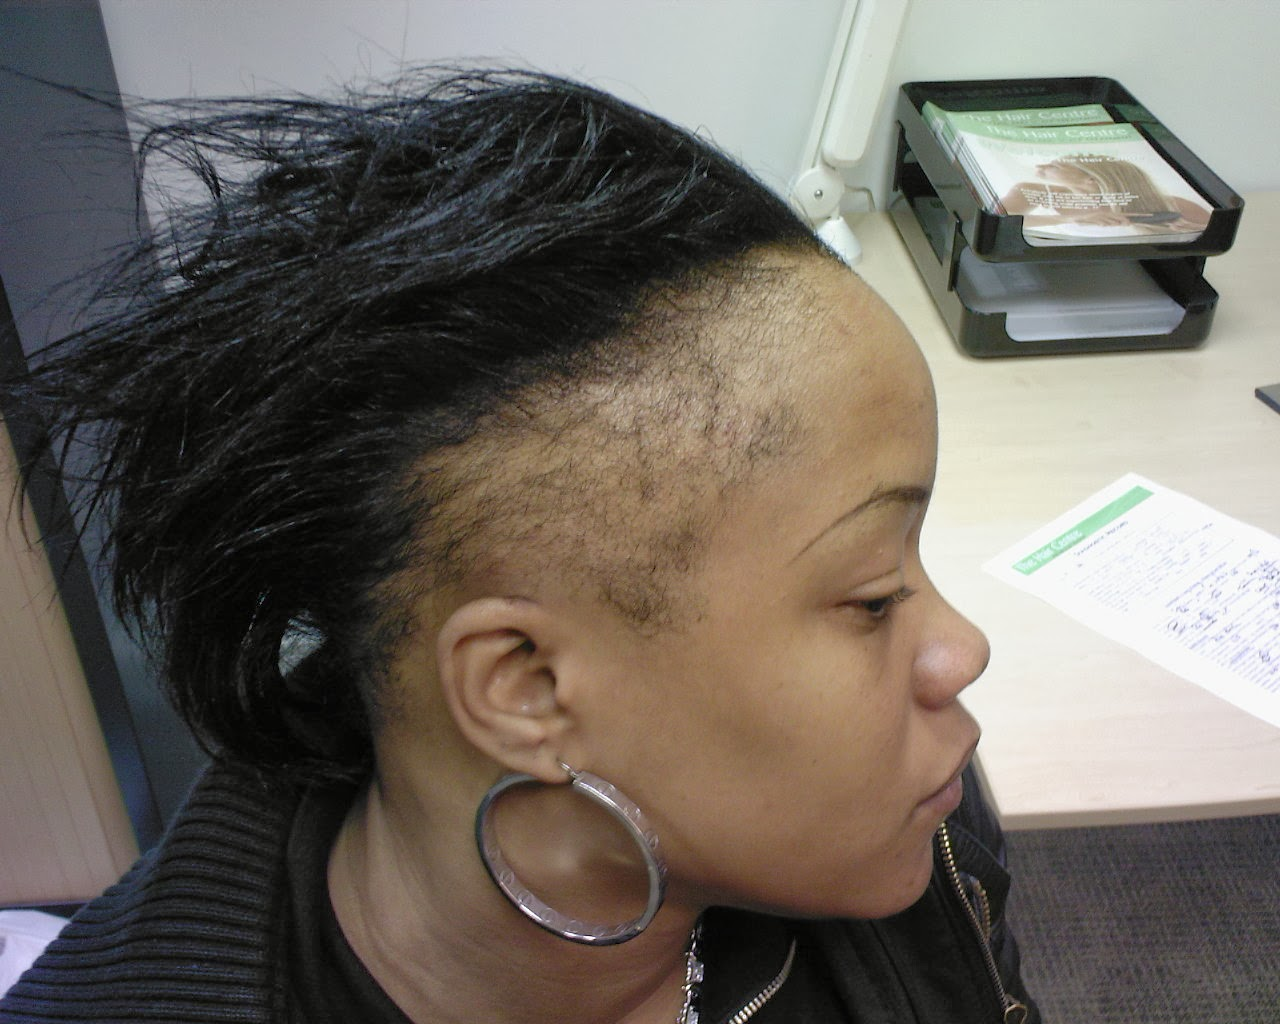 natural and healthy: dealing with sensitive hairline /edges